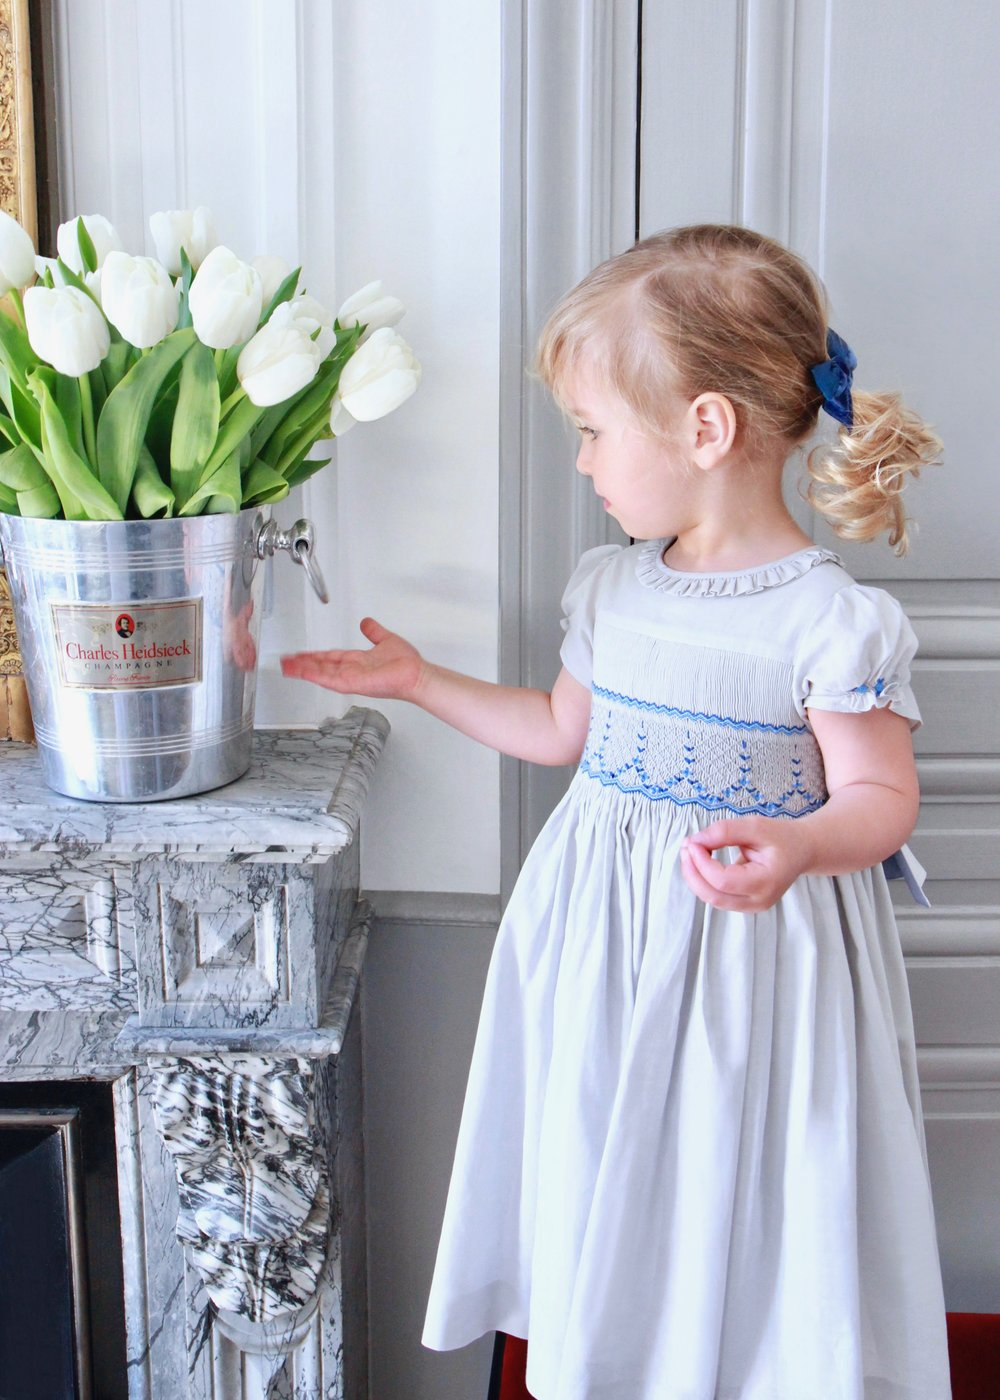 Paris boutique - handmade smocked dress - Children - French style